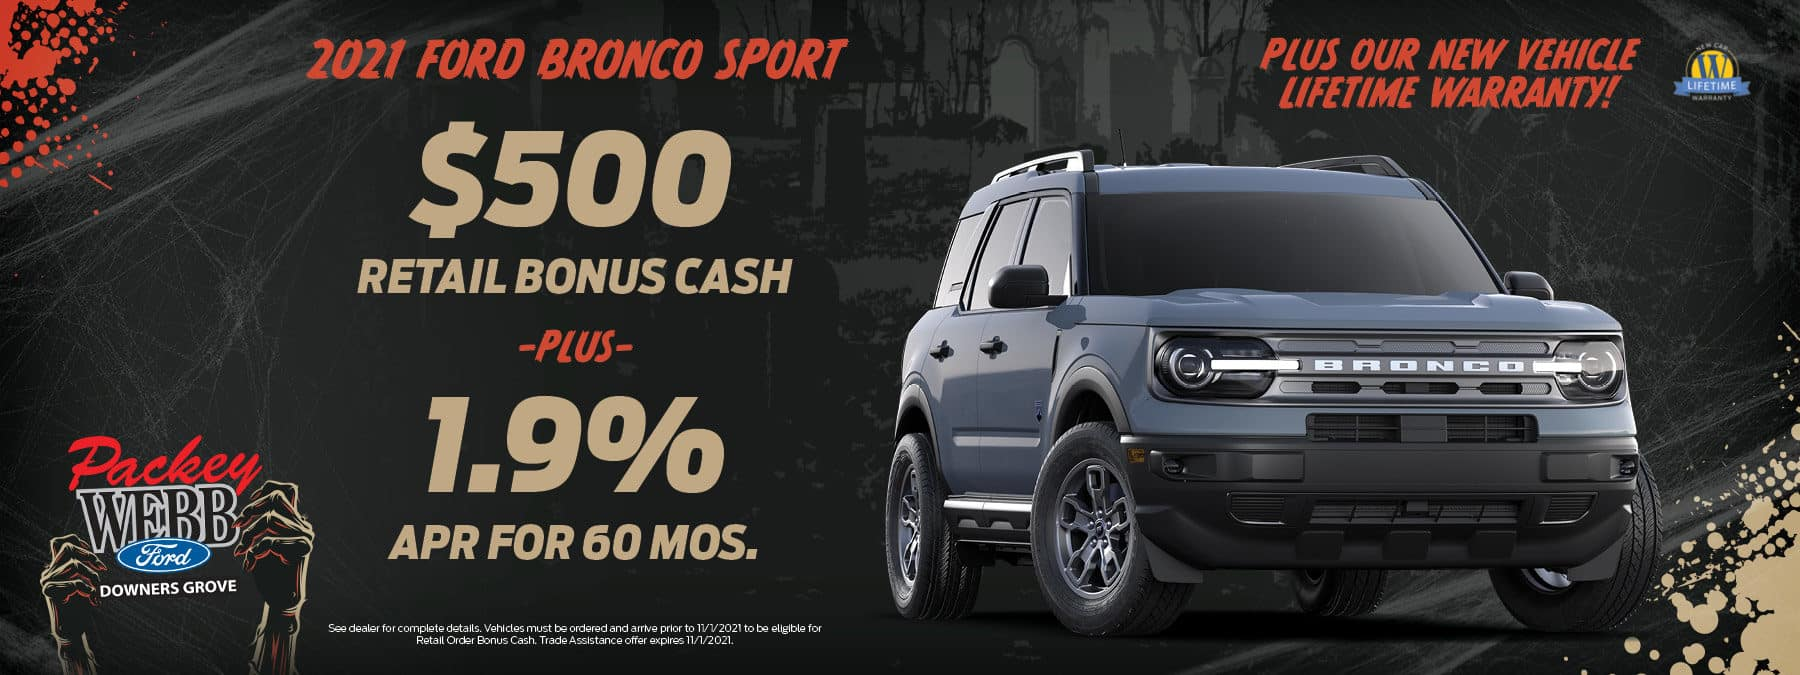 2021 Ford Bronco Sport   Packey Webb Ford   Downers Grove, IL